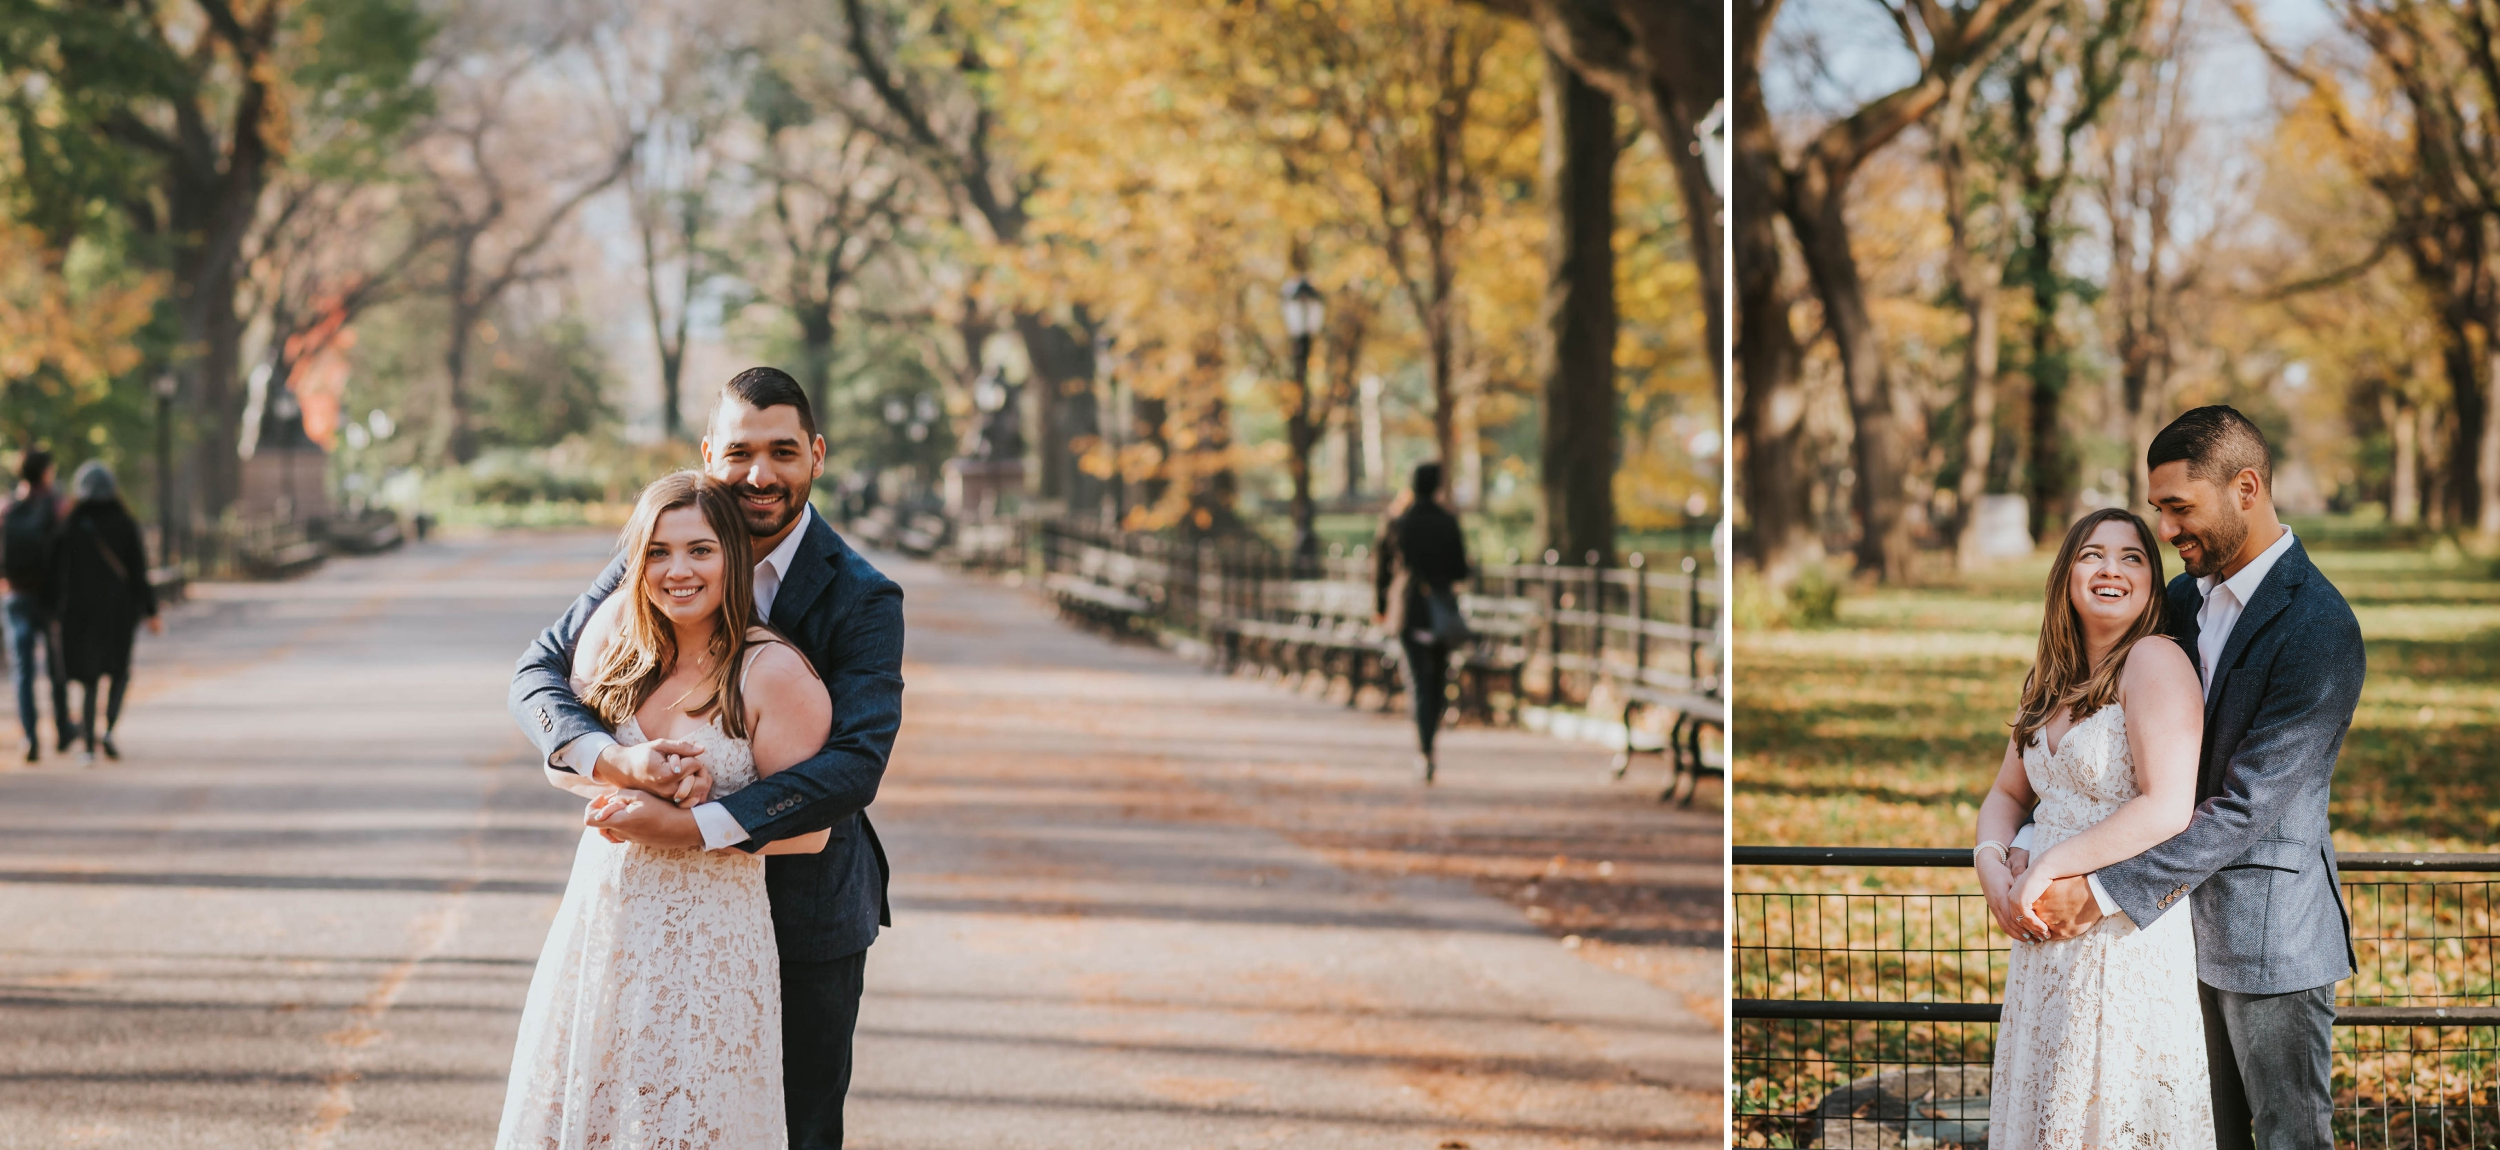 Rebecca and Darryn - Central Park Elopement NYC Manhattan 33.jpg